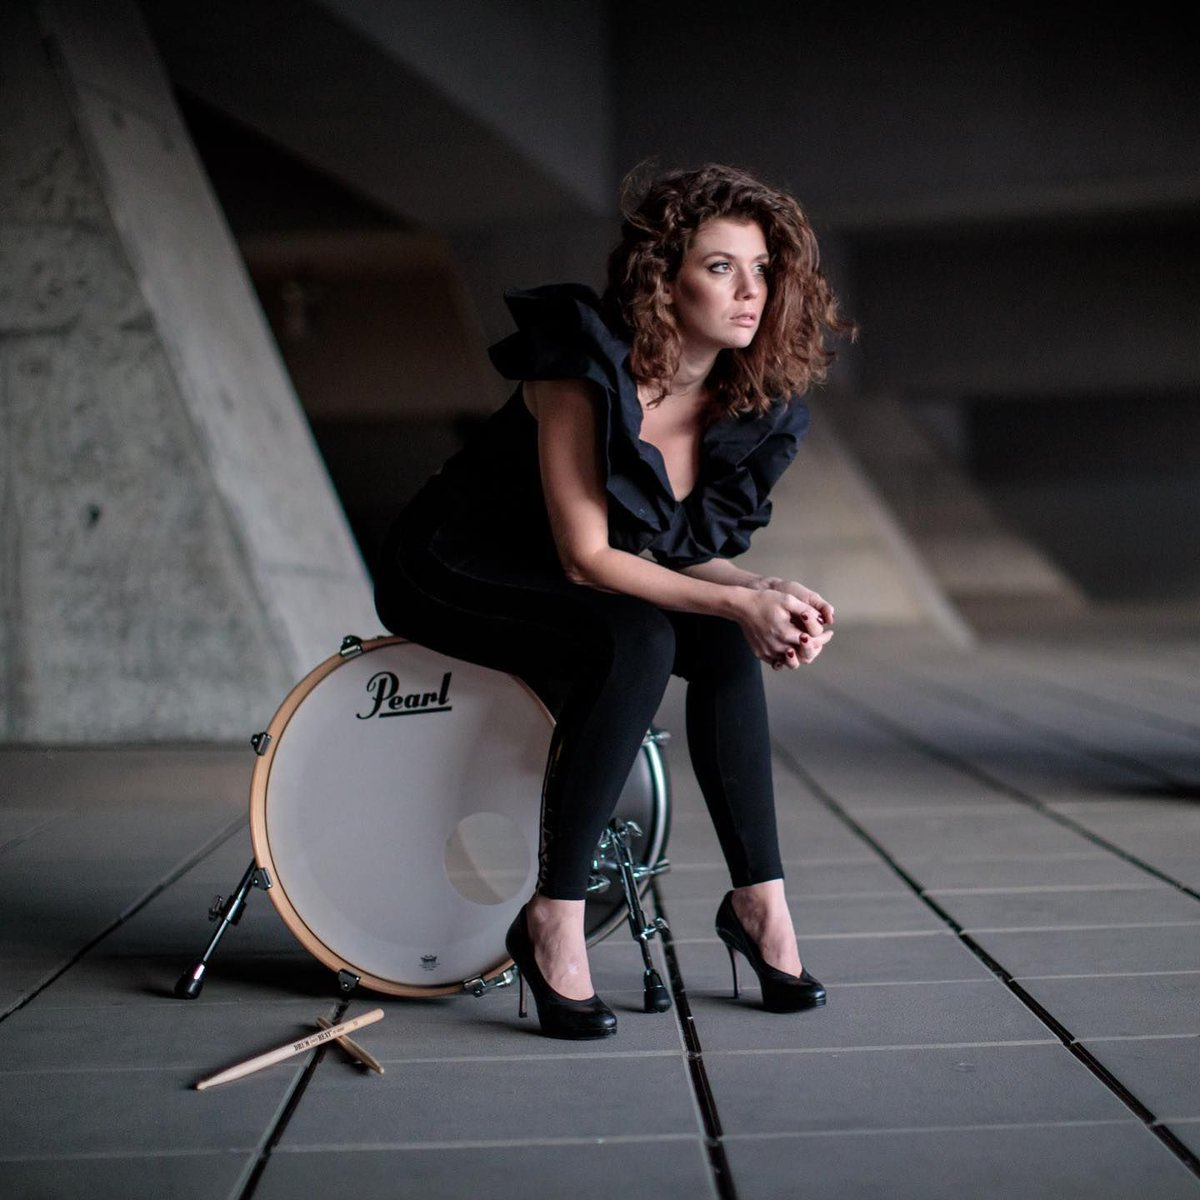 We're happy to announce that @aleksandrasuklar has joined the Pearl Family. We're looking forward to her new and upcoming projects.  Photographer: @stefanpanfili  #pearl #pearldrums #artist #percussionist #news #photoshooting #kickdrum #vienna #photography #music https://t.co/xQoN8RNmMT